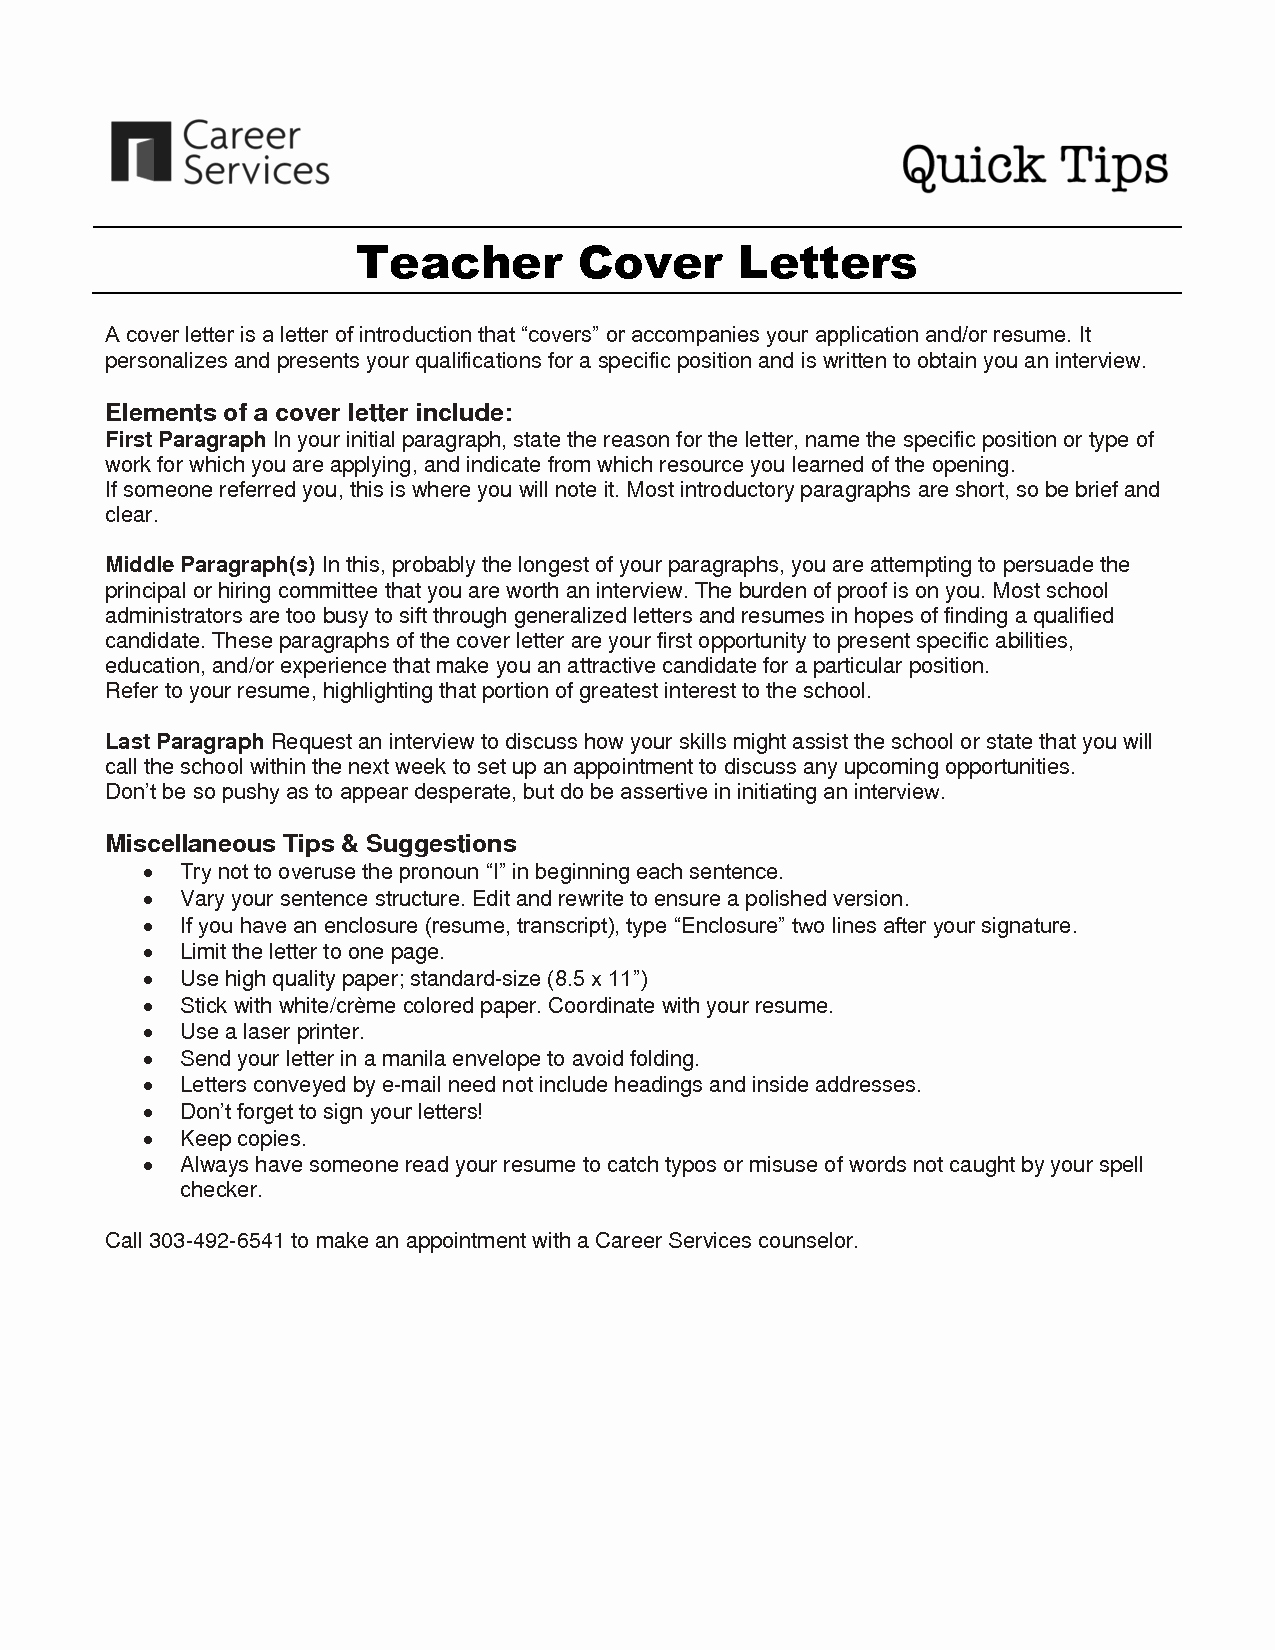 Teaching Job Cover Letter New Pin by Lynn King On Advice